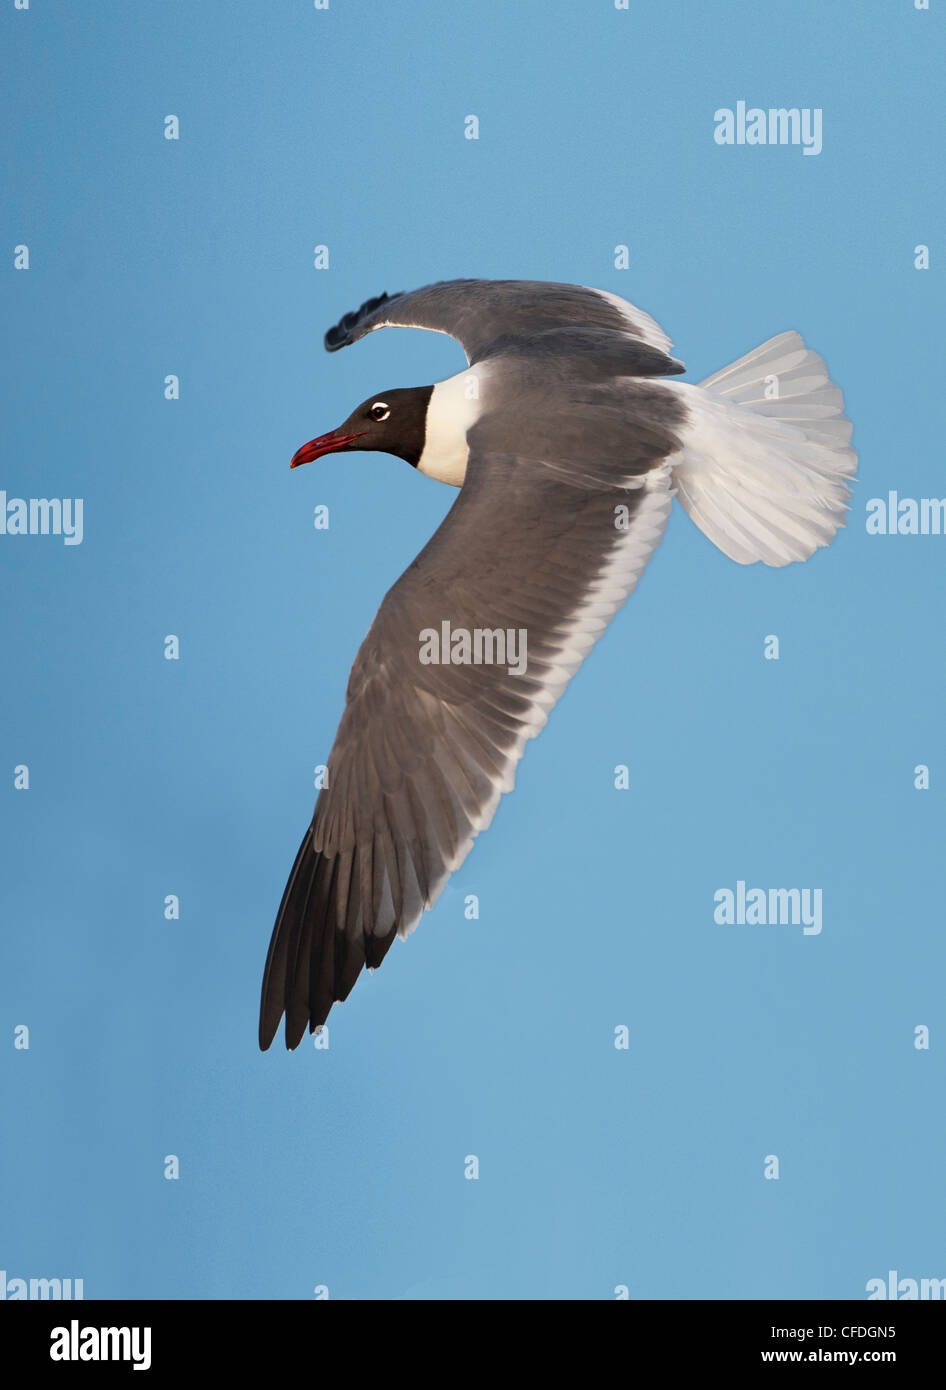 Laughing Gull (Larus atricilla) - South Padre Island, Texas, United States of America - Stock Image